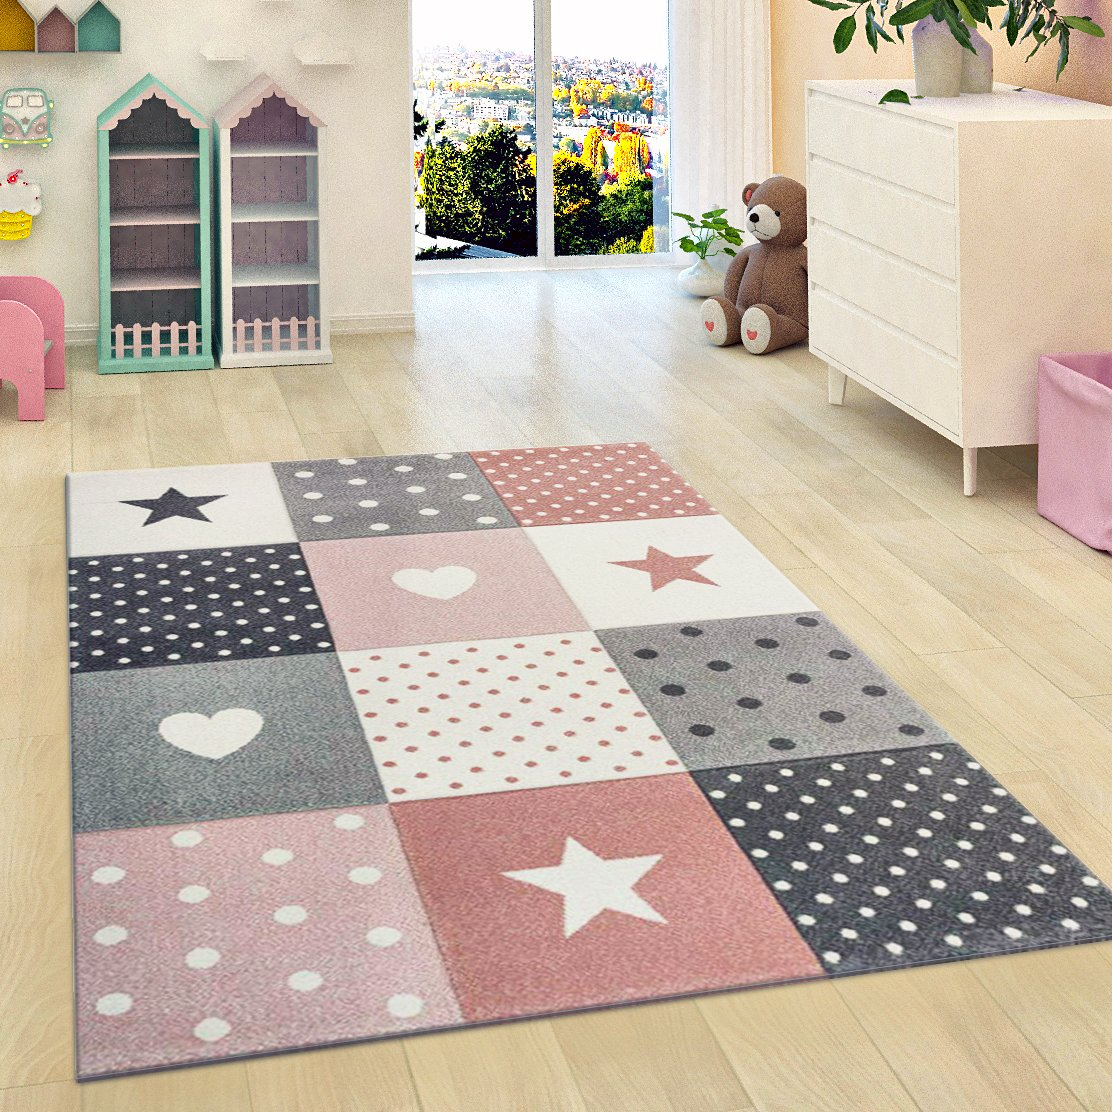 Nursery Rug Stars Children Girls Bedroom Carpet Pink Grey Soft Play Room Mat (160x230cm (5'3'x7'7')) Xrug Ltd